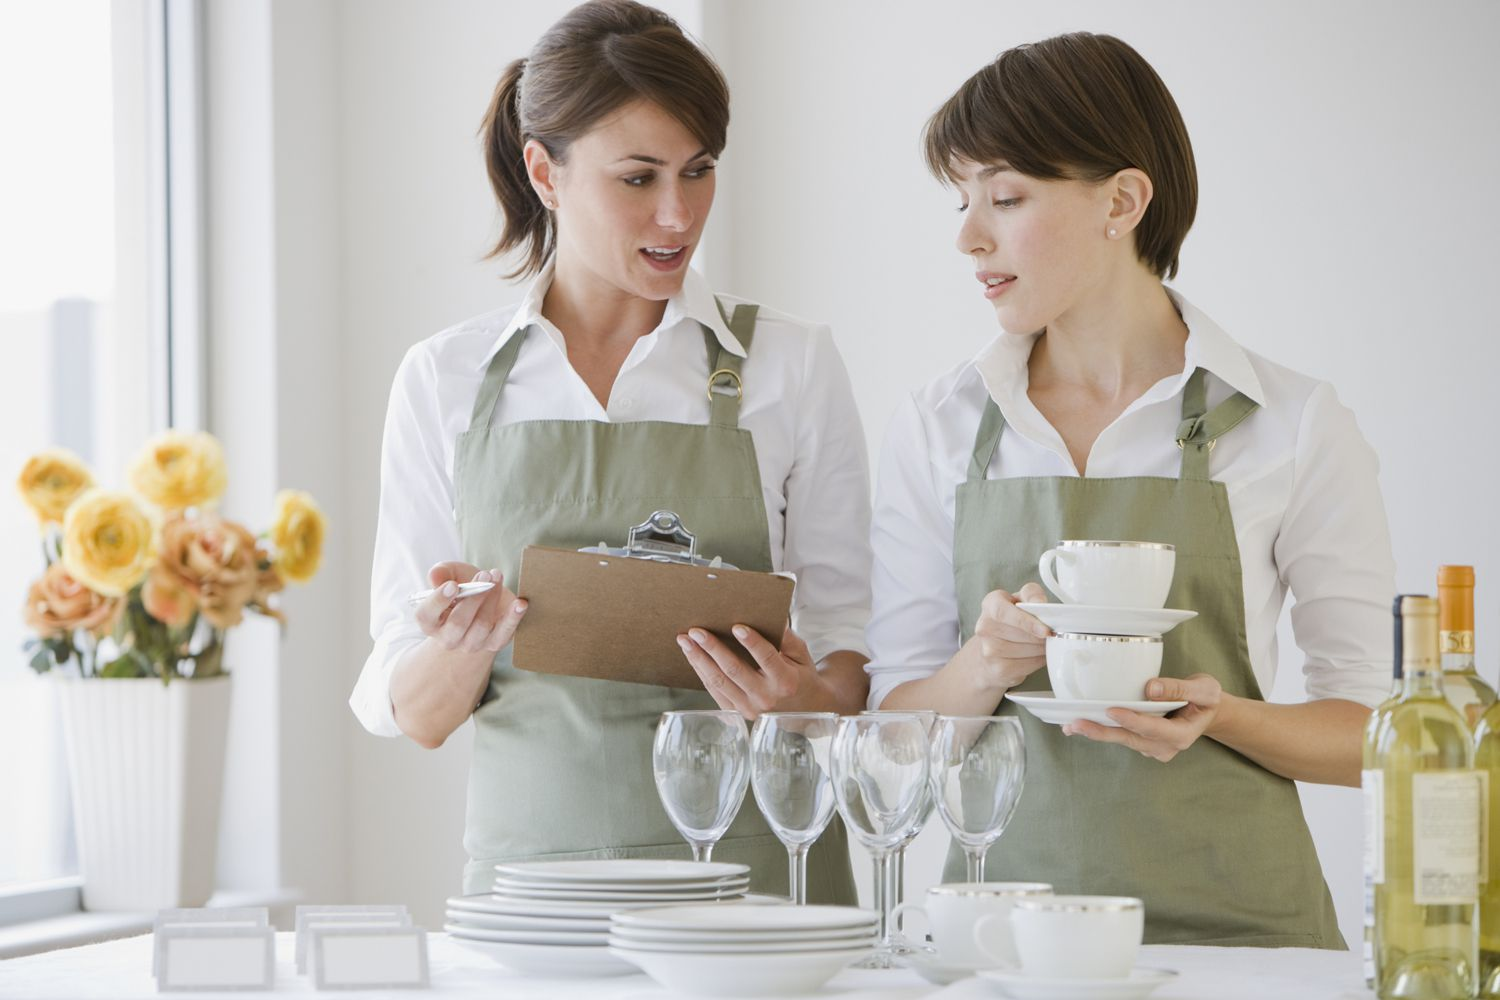 How to Prepare for a Career in Wedding Planning